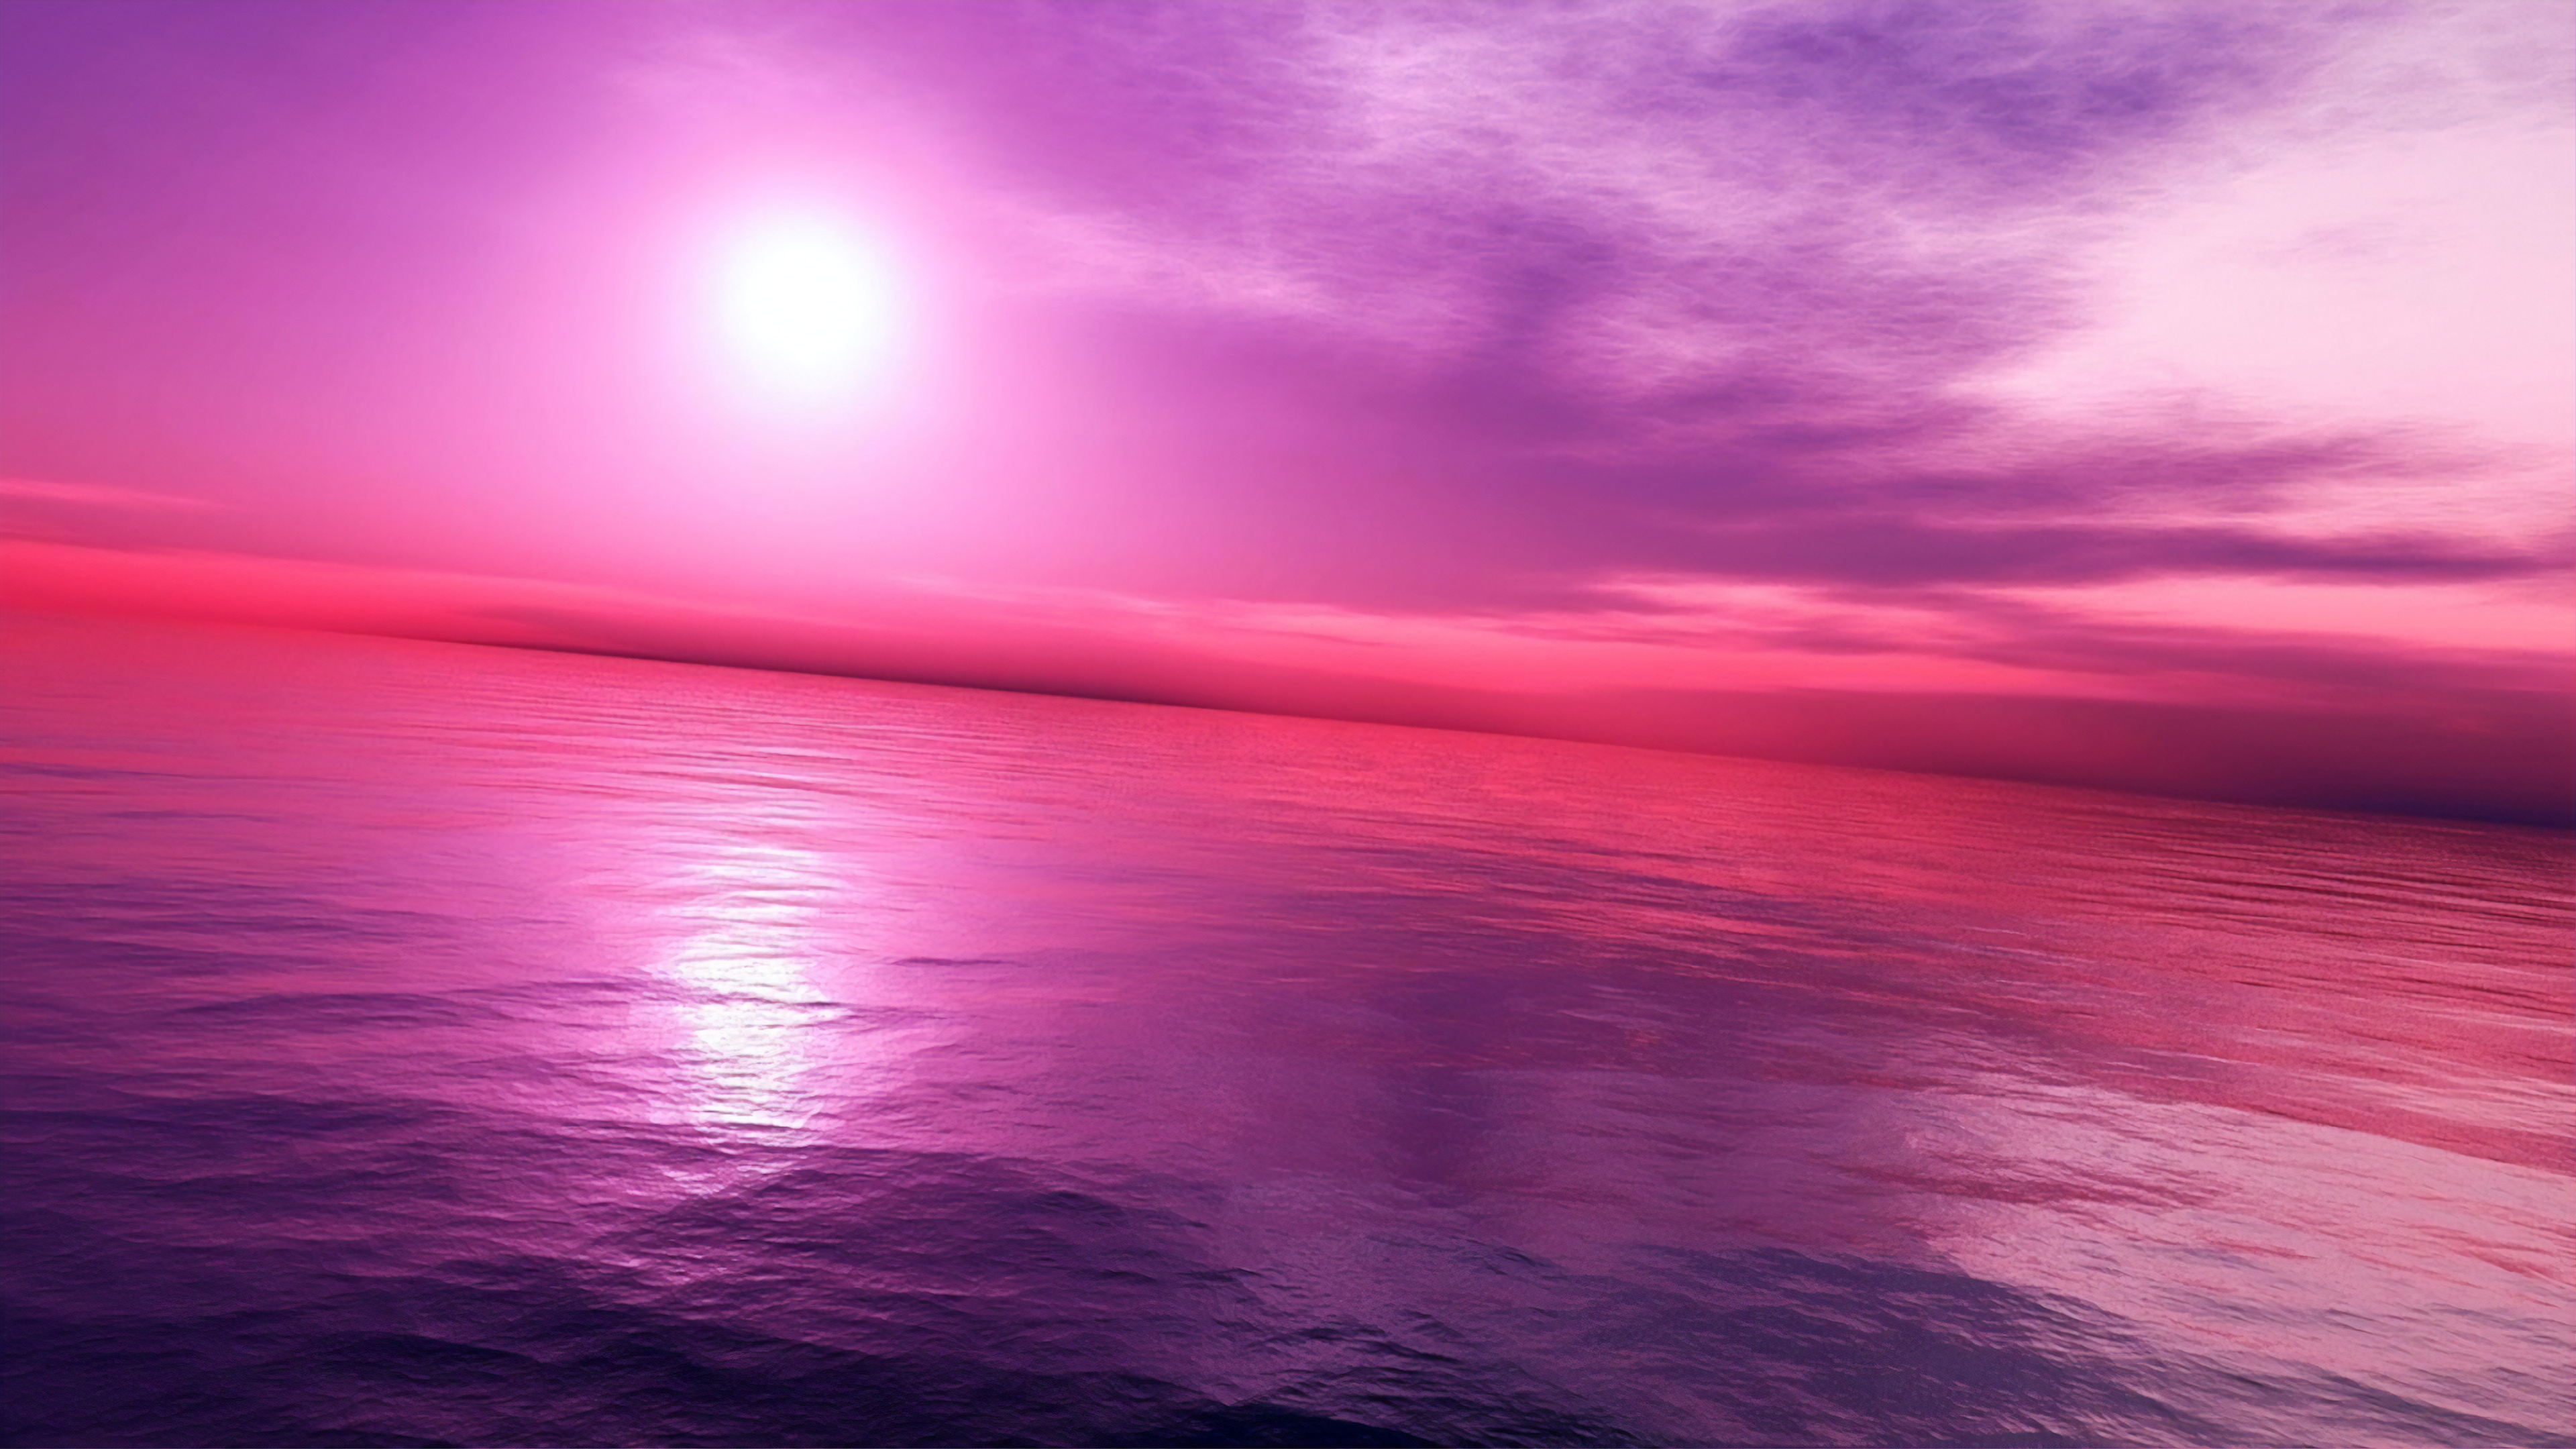 Pink Purple Sky 4k, HD Nature, 4k Wallpapers, Images ...